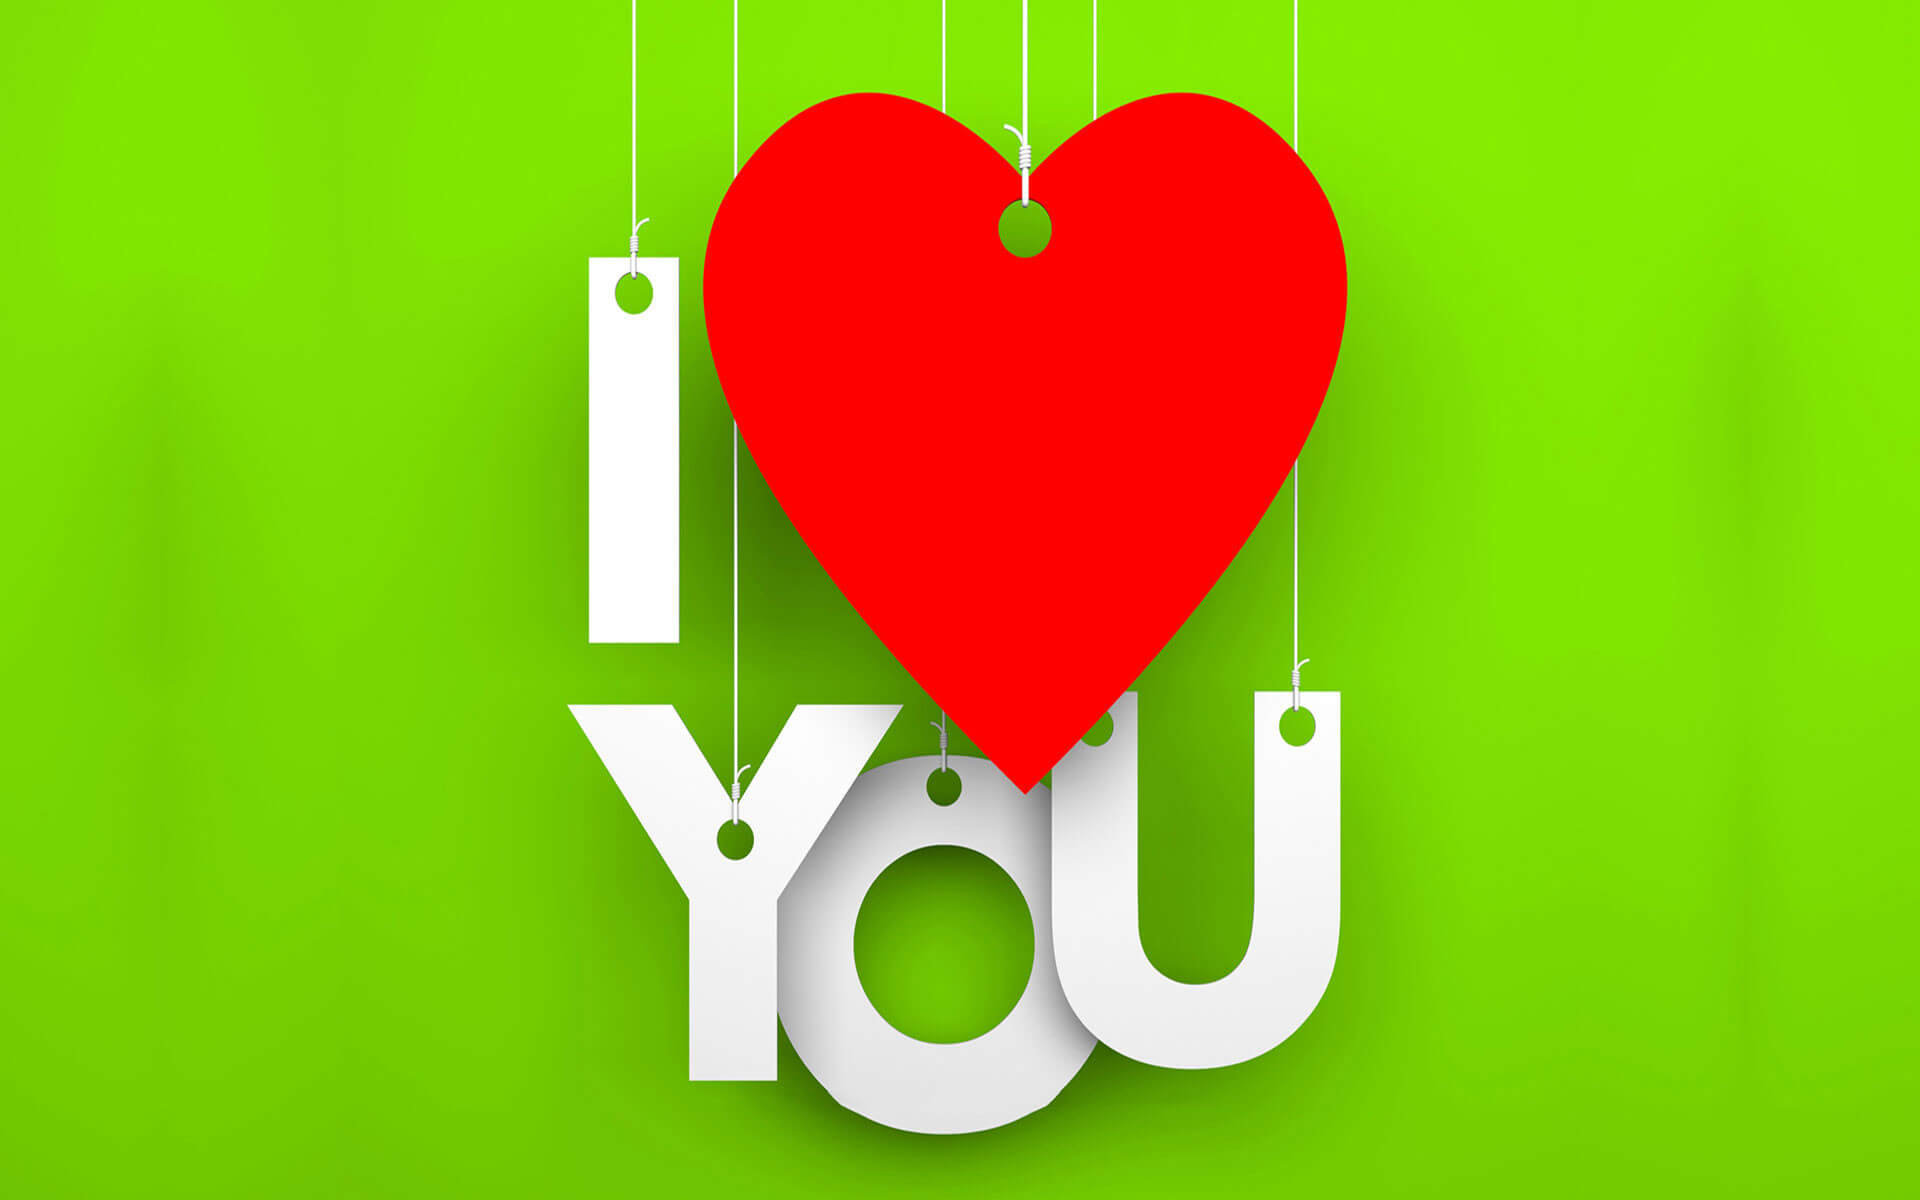 i love you green background